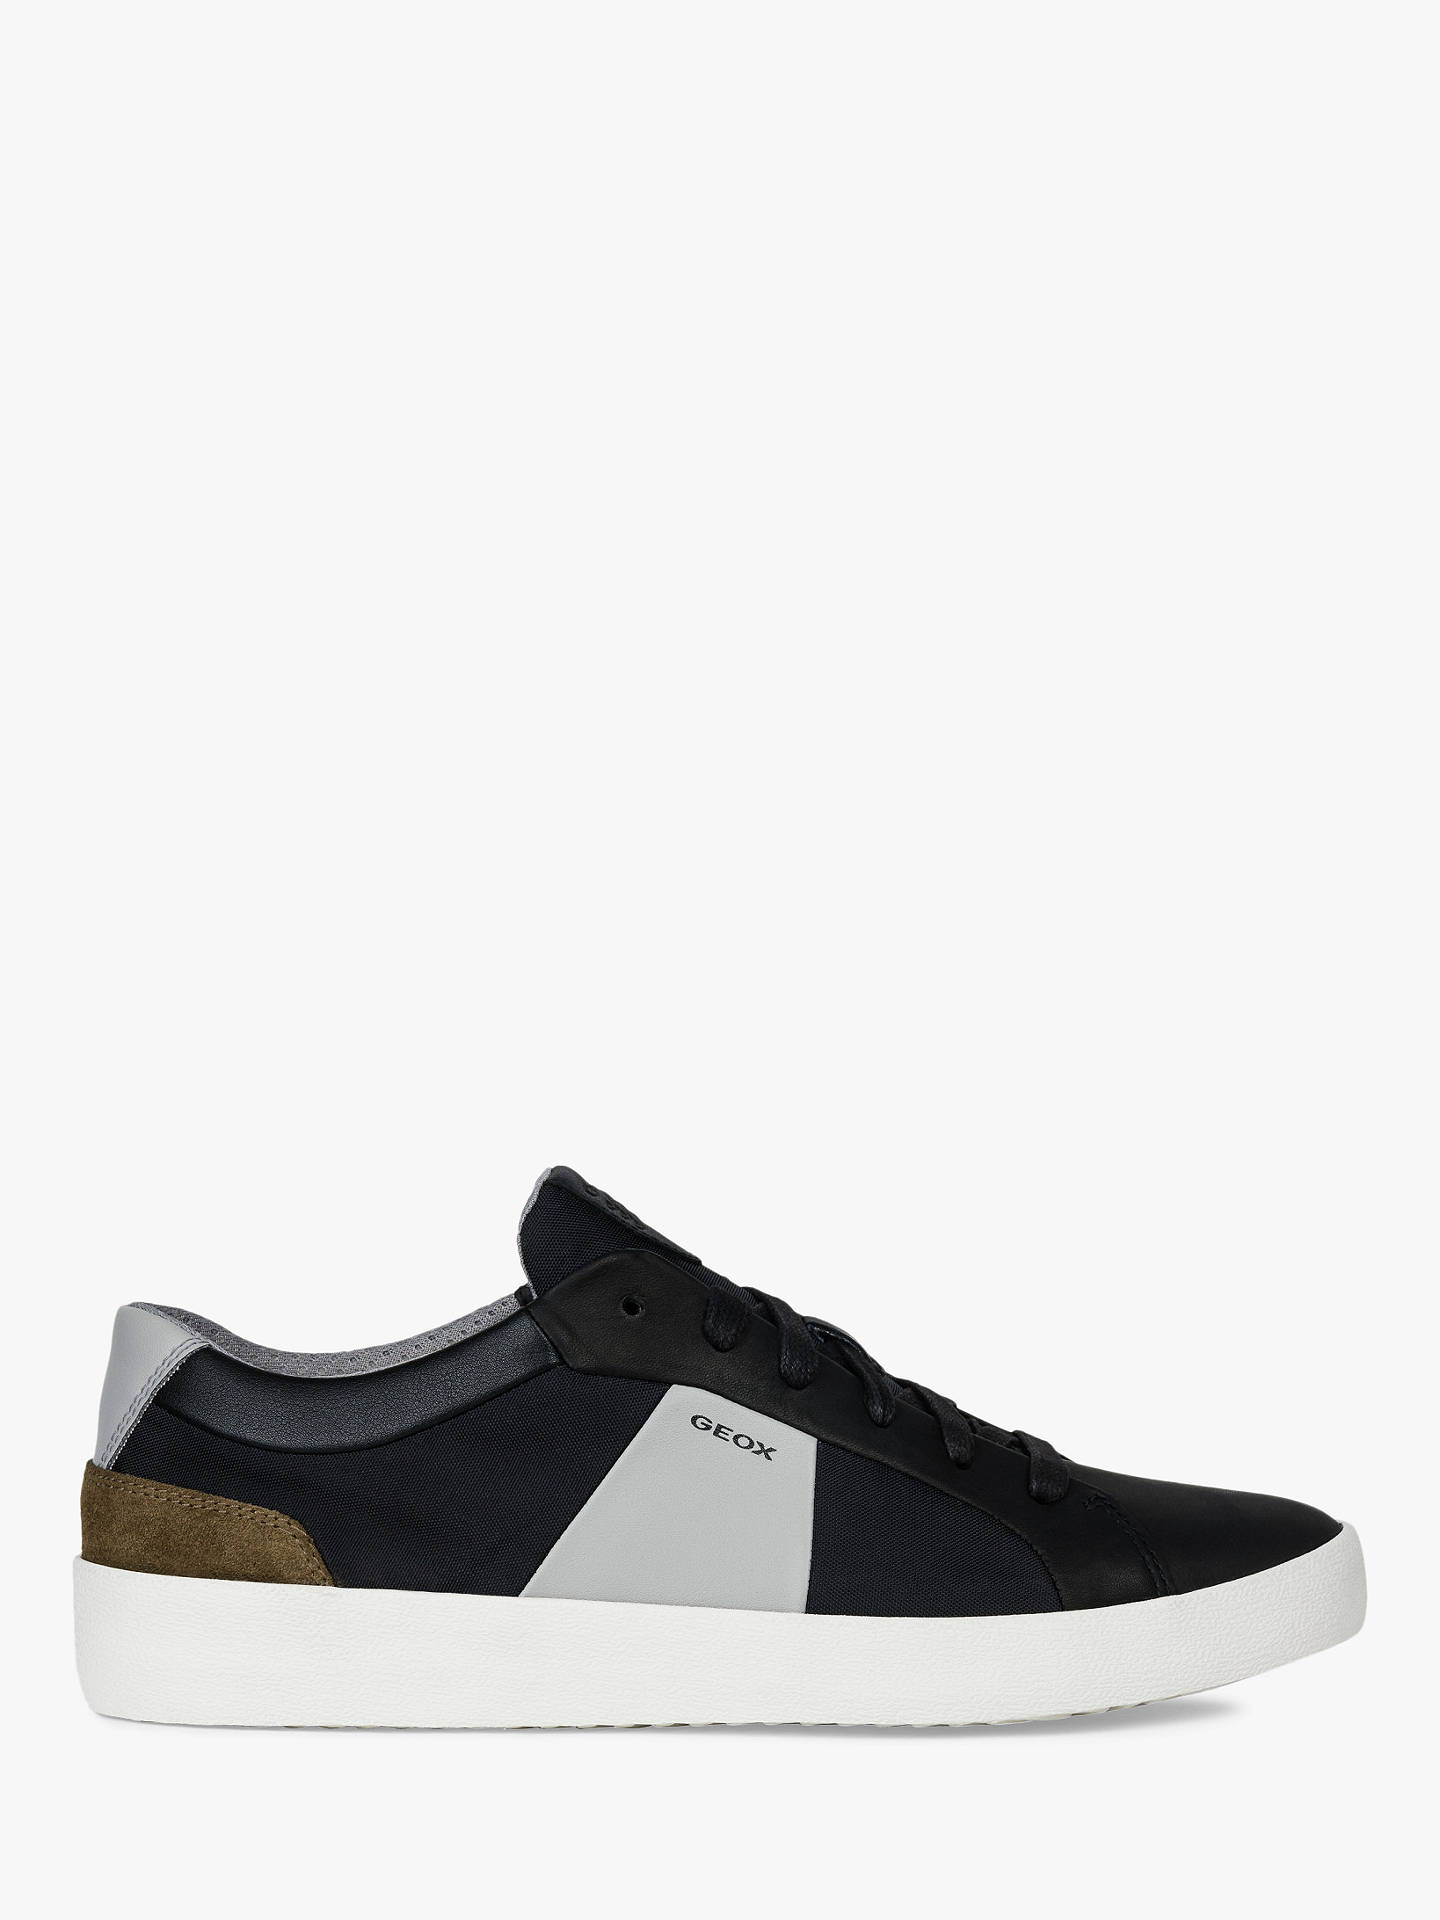 2a7397184e Geox Warley Leather Chunky Trainers at John Lewis   Partners